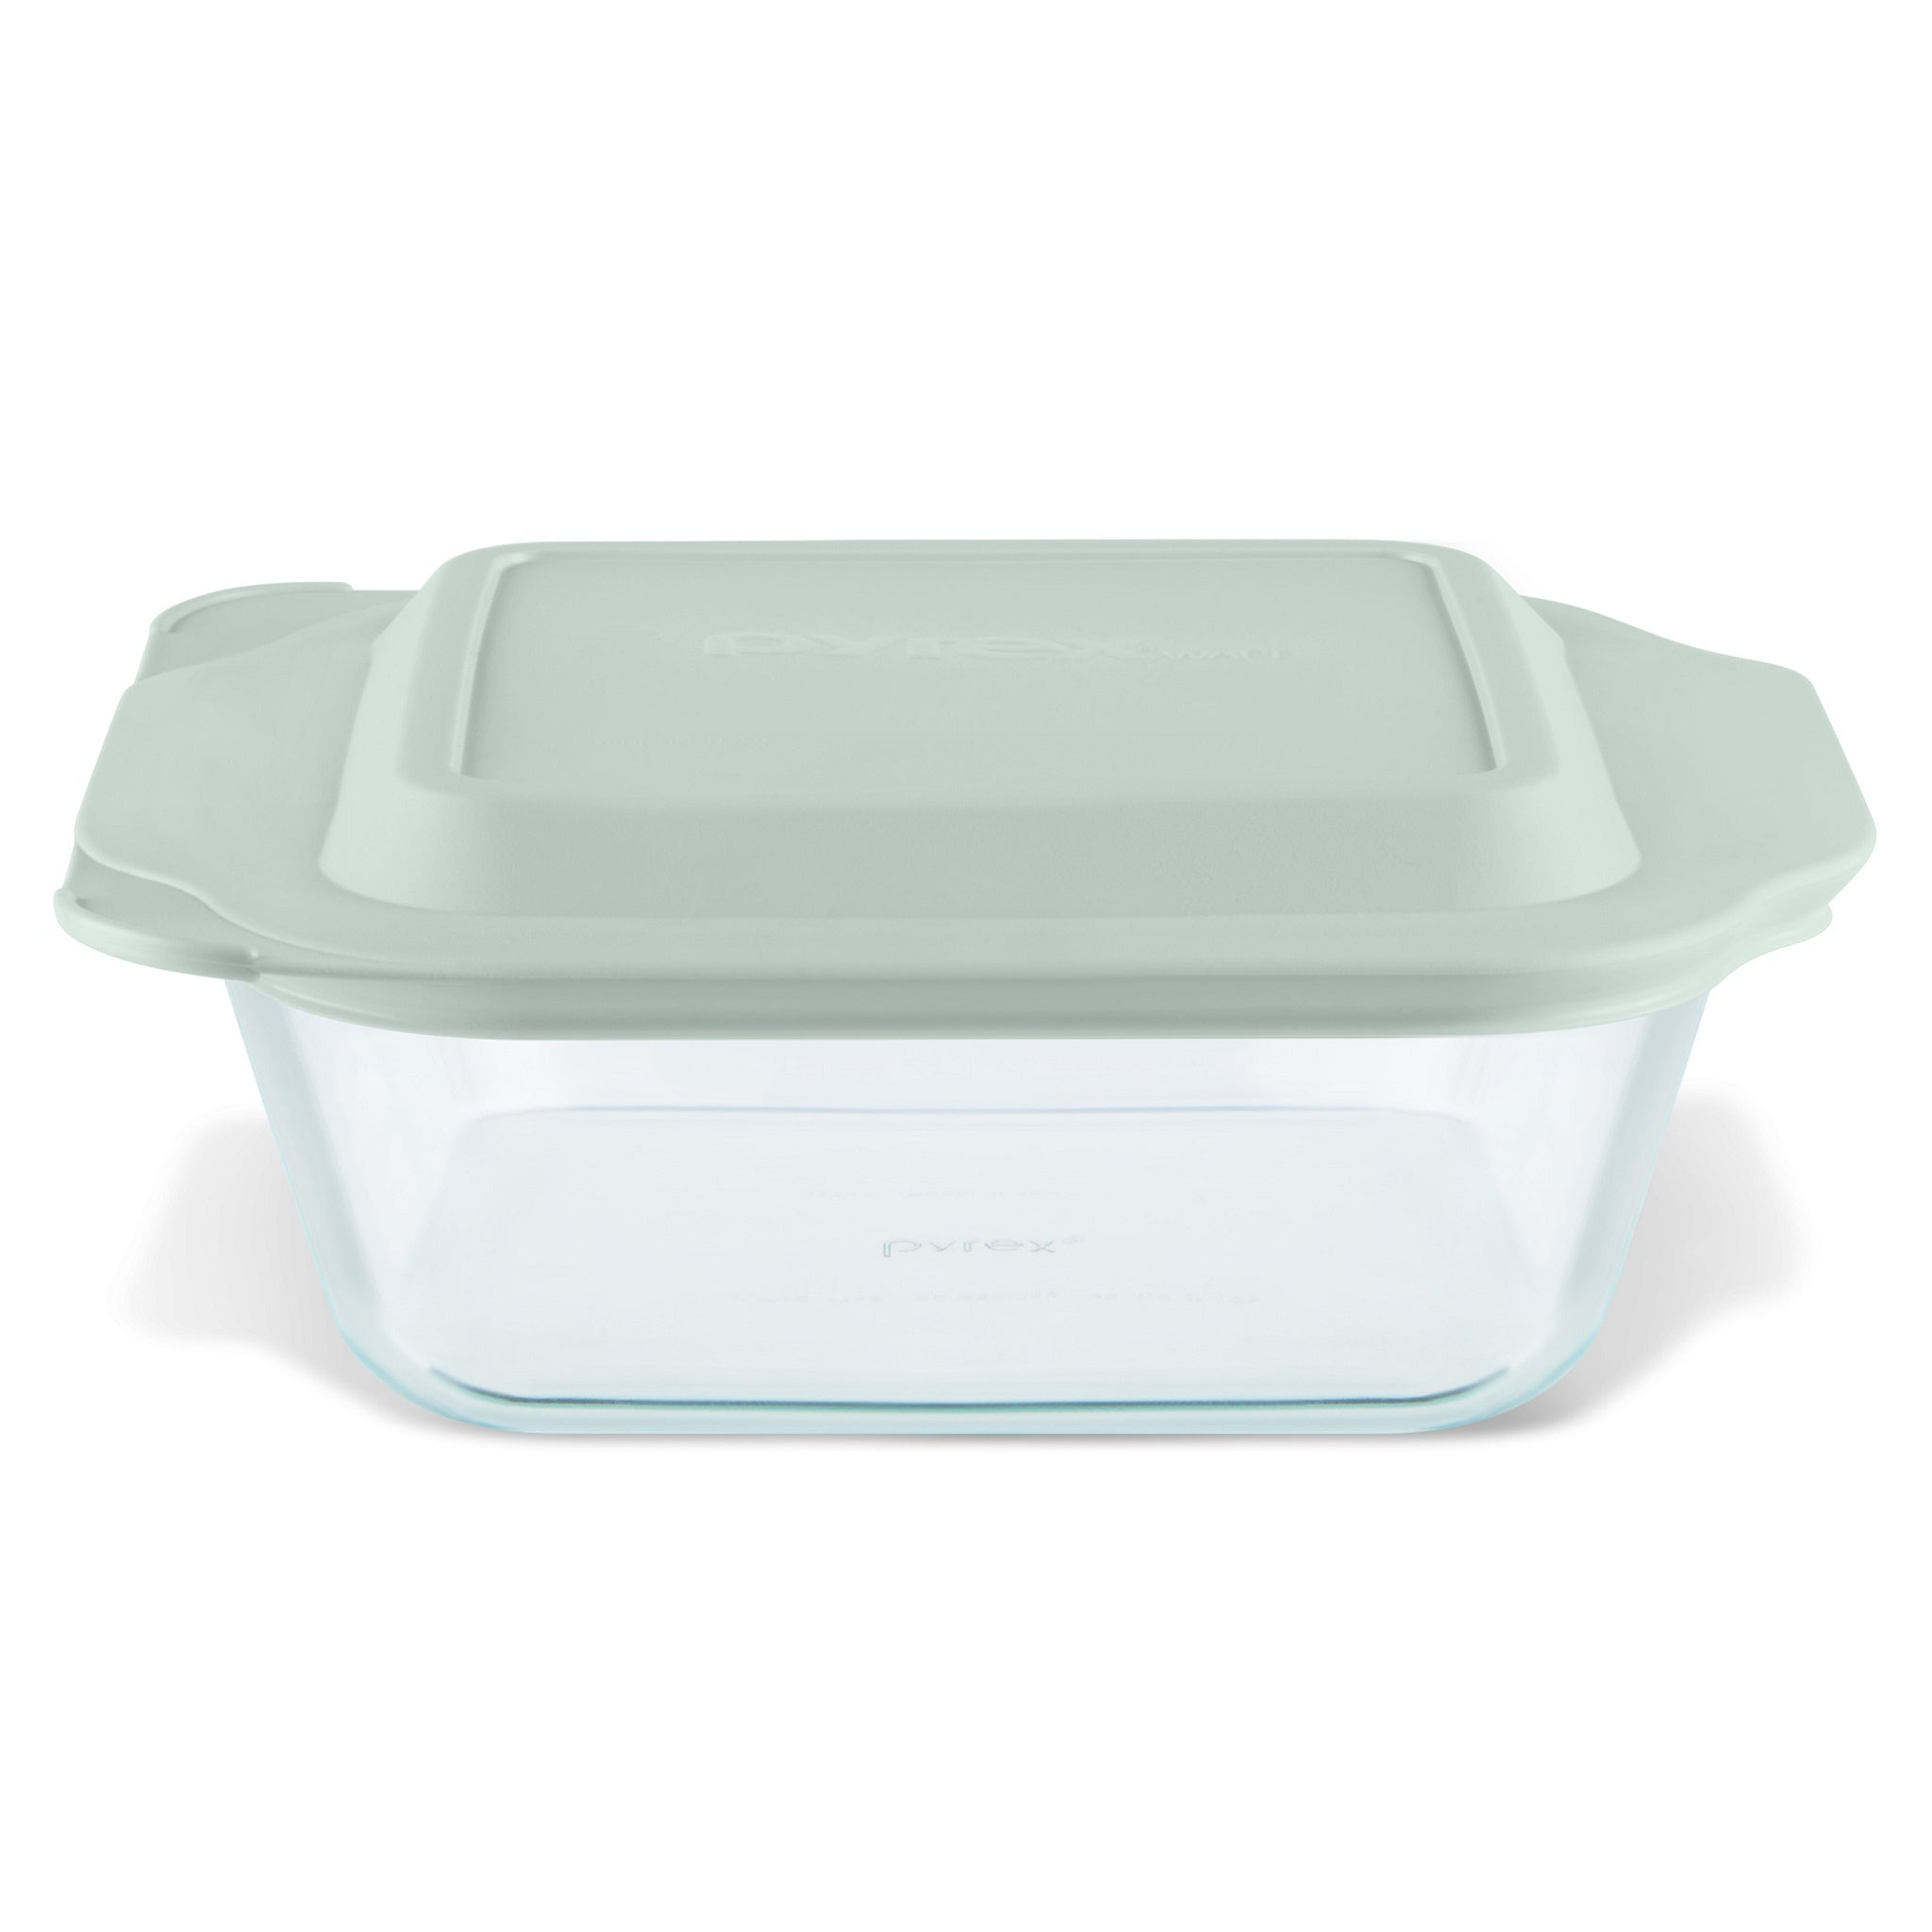 Pyrex Deep Dish 20.3cm Square Baker with Sage Lid-1134583